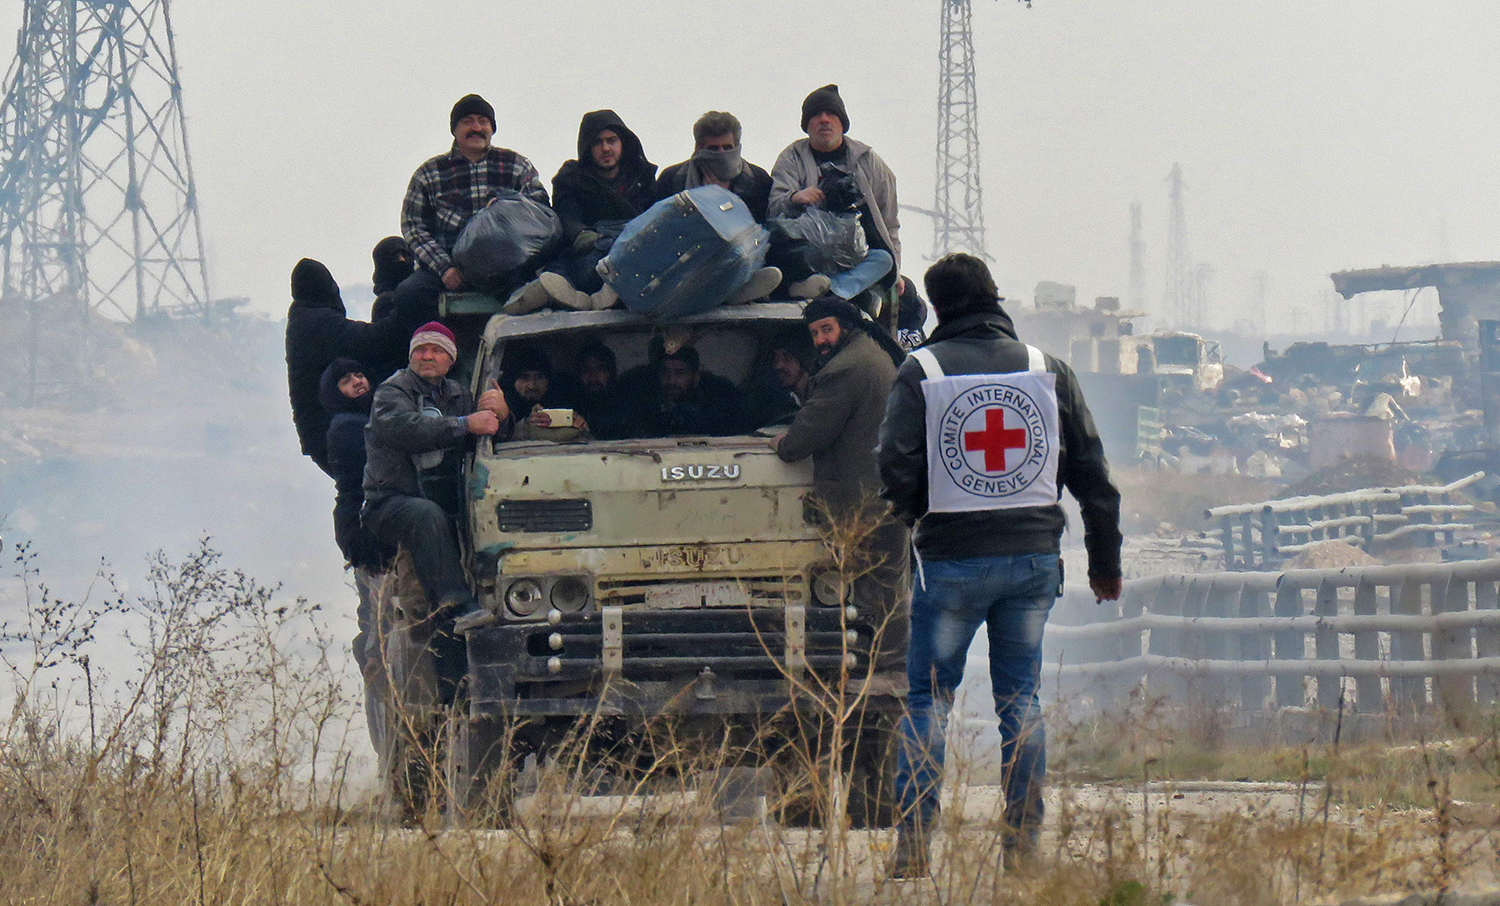 TOPSHOT - Syrians are evacuated from a rebel-held area of Aleppo towards rebel-held territory in the west of Aleppo's province on December 16, 2016. Russia announced it was negotiating with the Syrian opposition and seeking a nationwide ceasefire, as the evacuation of civilians and fighters from the last rebel-held parts of Aleppo entered a second day. The Syrian Observatory for Human Rights, a Britain-based monitor of the war, estimated some 8,500 people had left so far, including around 3,000 rebel fighters. Syrian state media reported a figure of around 8,000. / AFP PHOTO / STRINGER / TT / kod 444